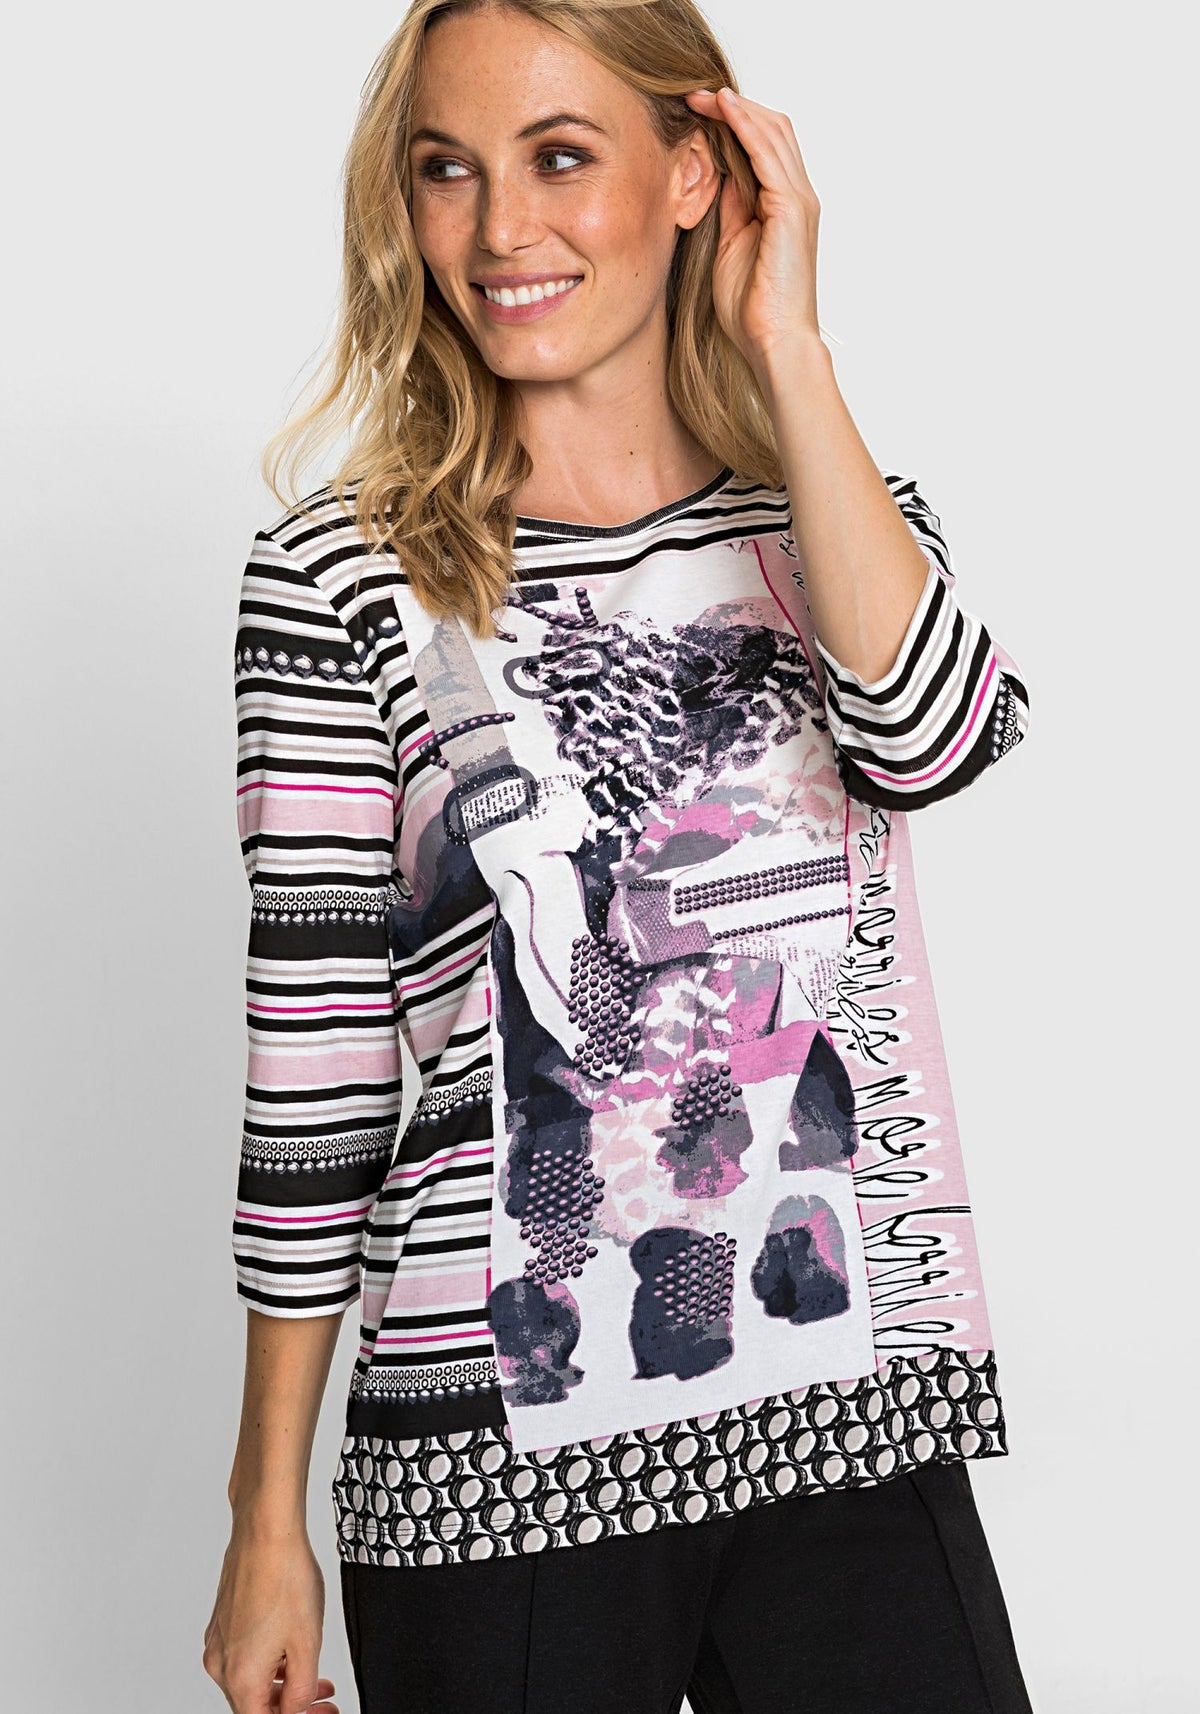 100% Cotton Multi Print T-Shirt with Rhinestone Accents (Hannah Fit)